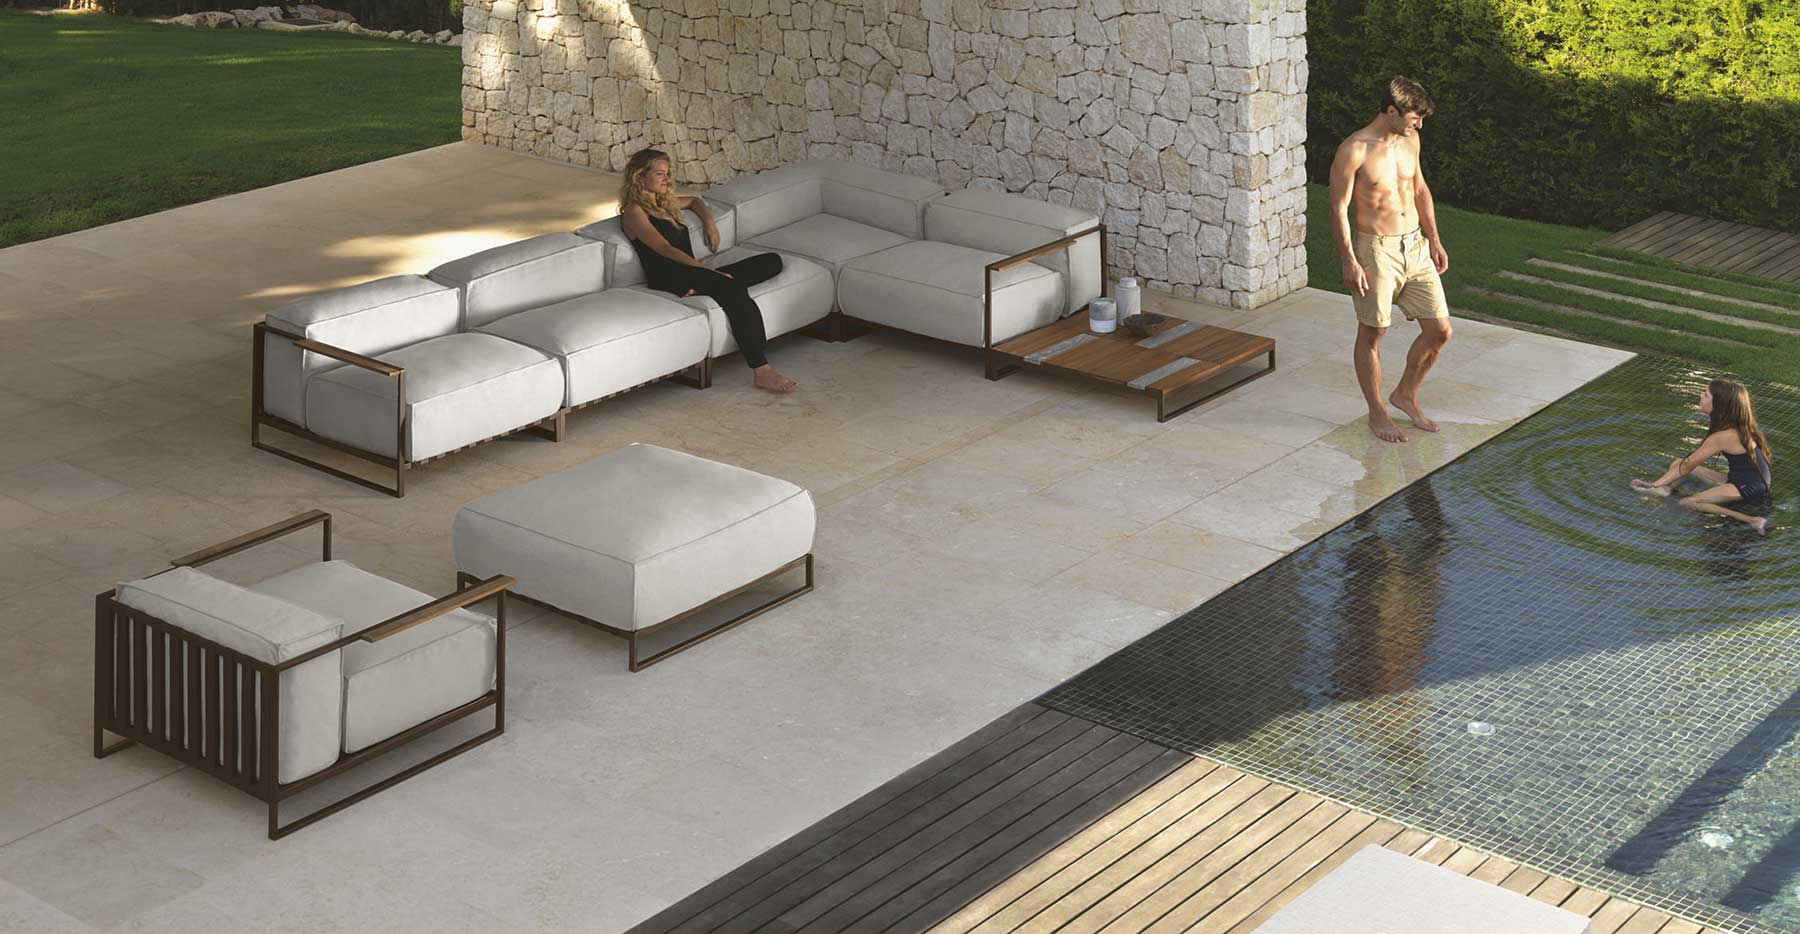 Garden Lounge Furniture santafe garden lounge set. luxury outdoor furniture. design by ramon esteve. MDFPMHZ